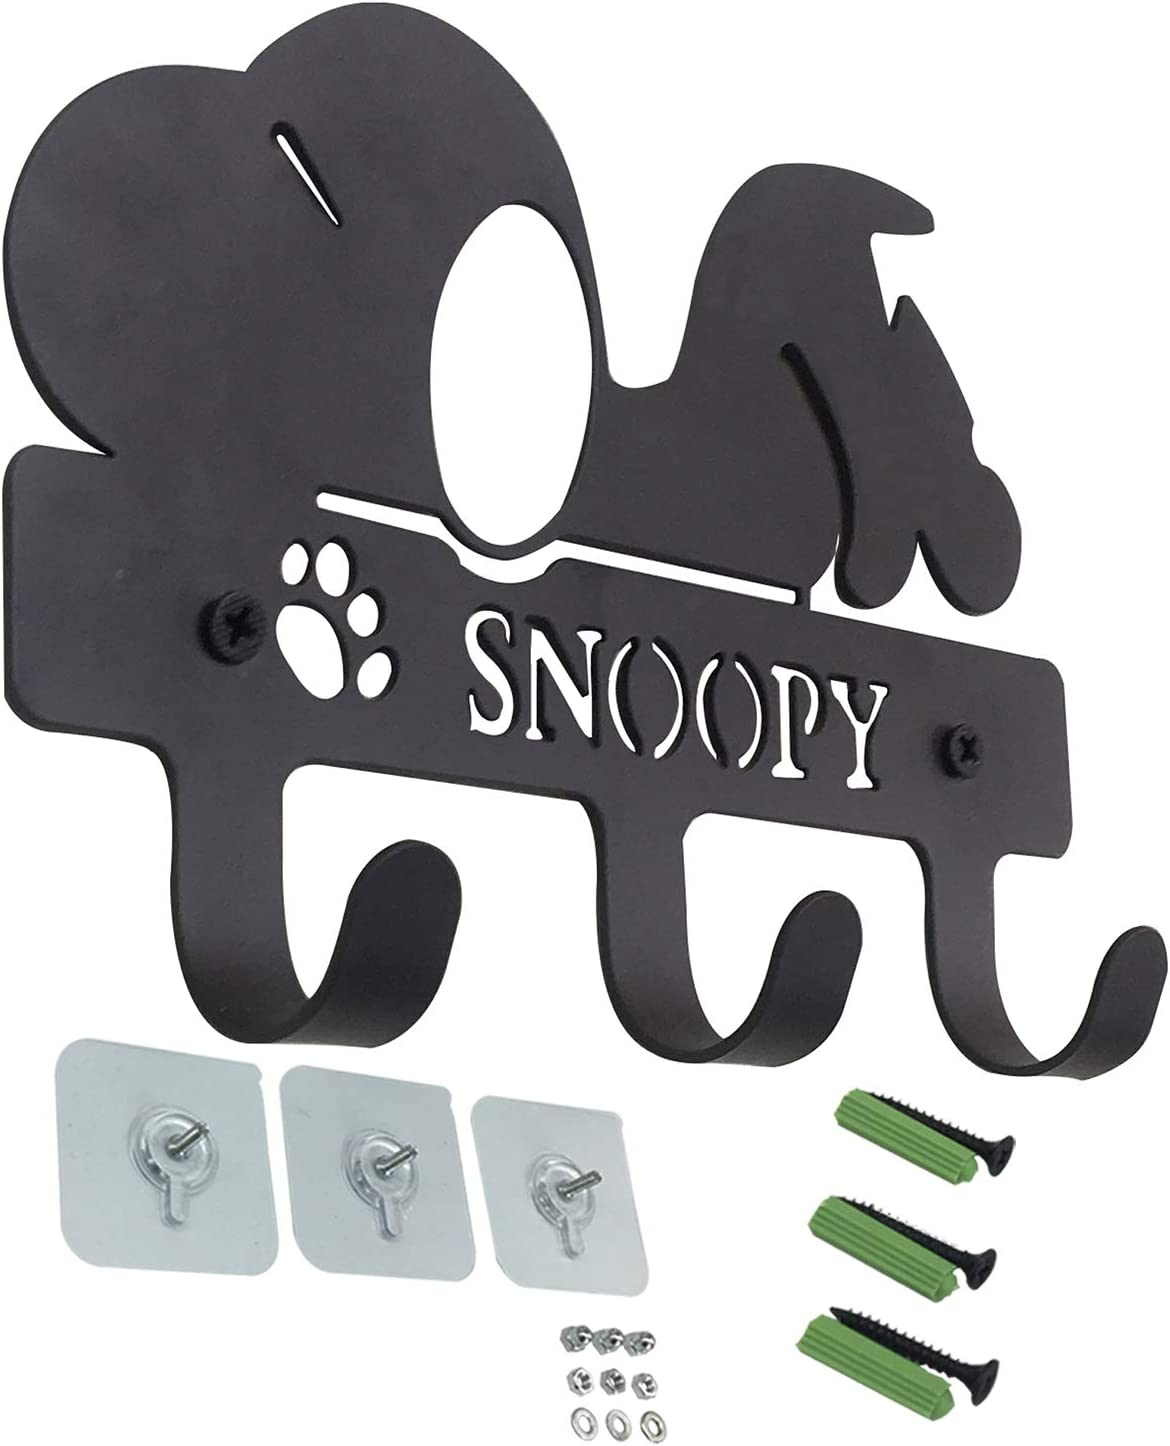 PandS Snoopy Key Hooks with 3 Hooks - Snoopy Key Hooks - Key Rack Great for Leashes Coats Purses Bags Keys and Hats - Decor for Your Home Entryway and Bathroom